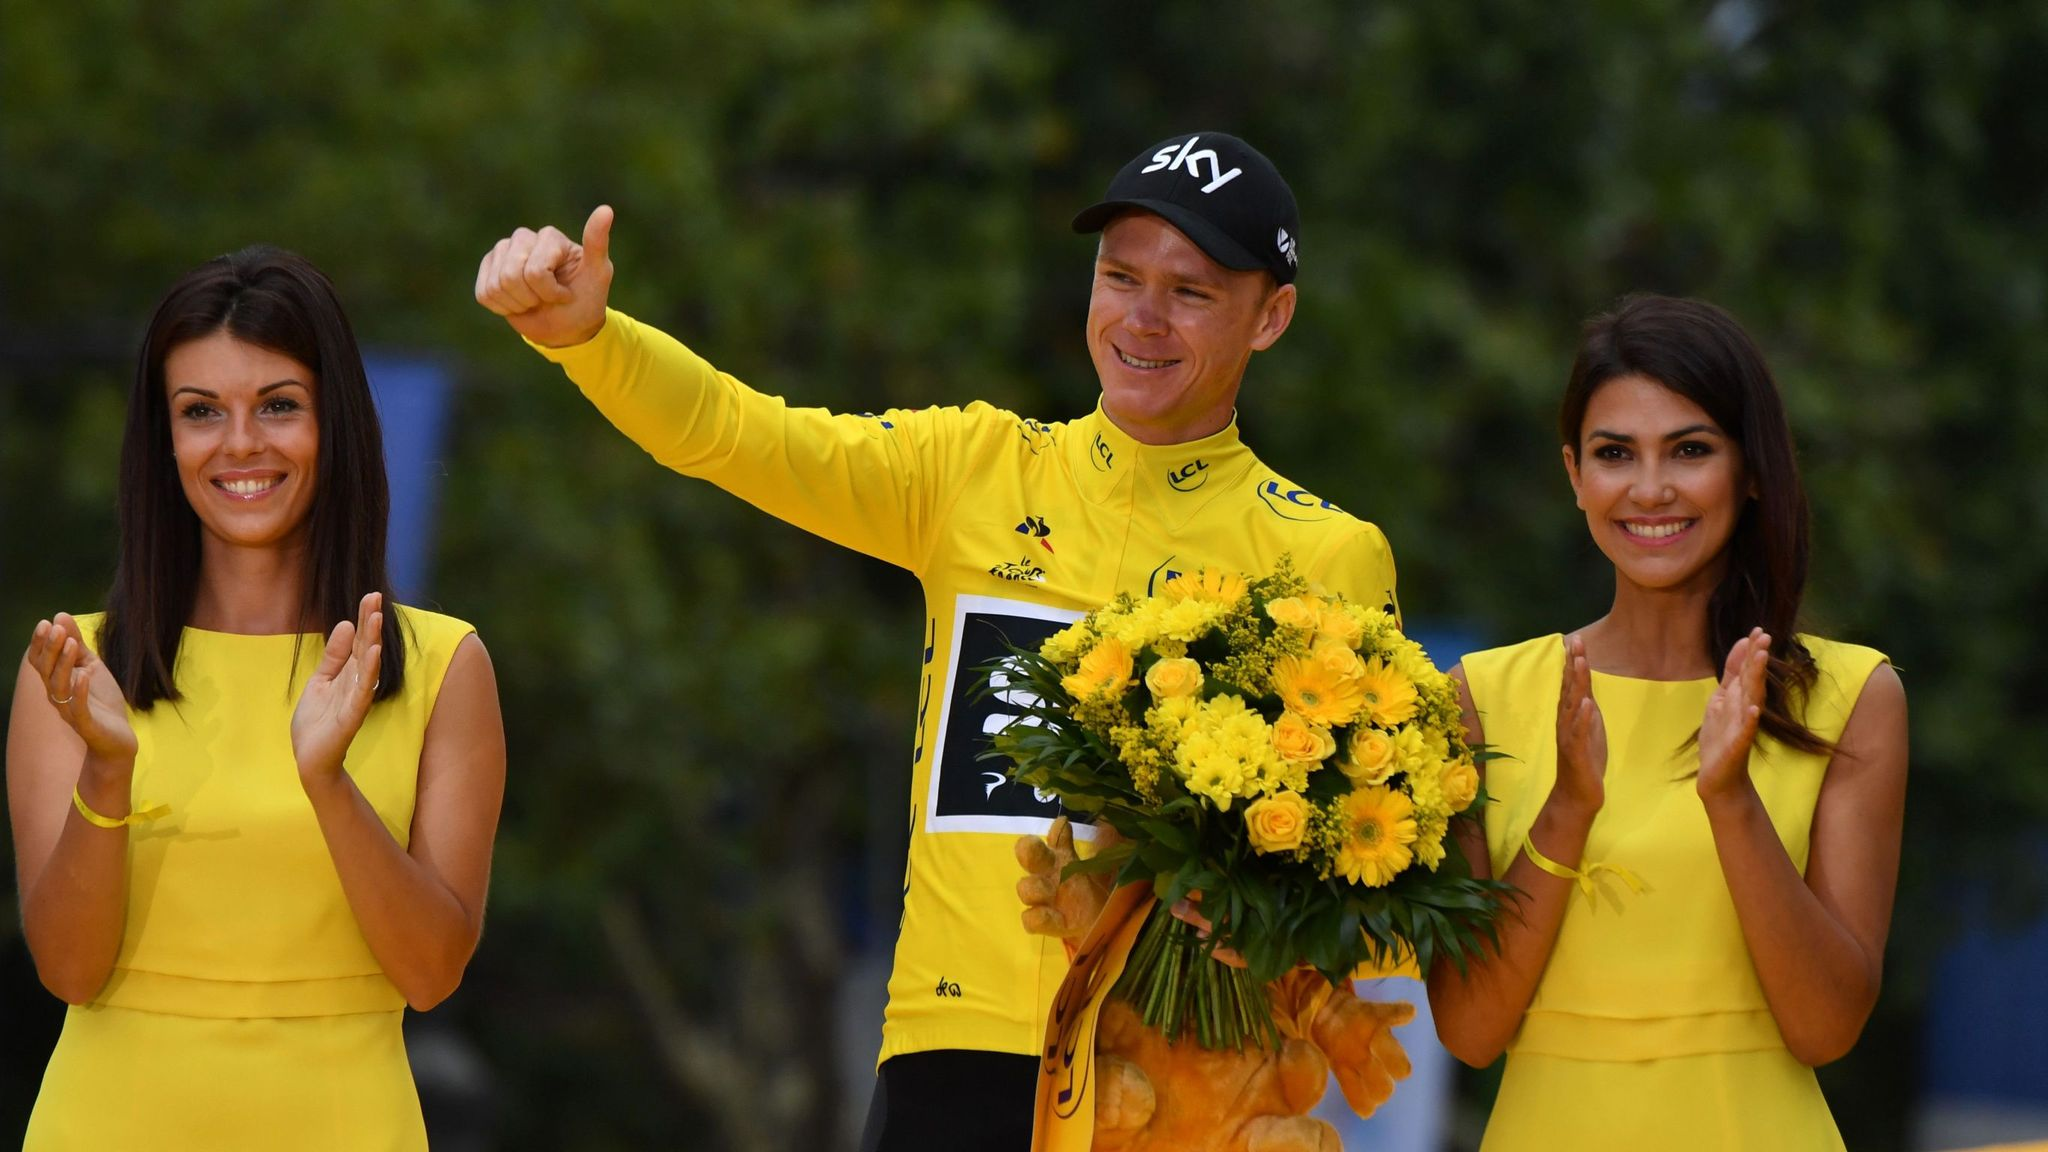 Tour de France champion Chris Froome pays tribute to 'flawless' Team Sky